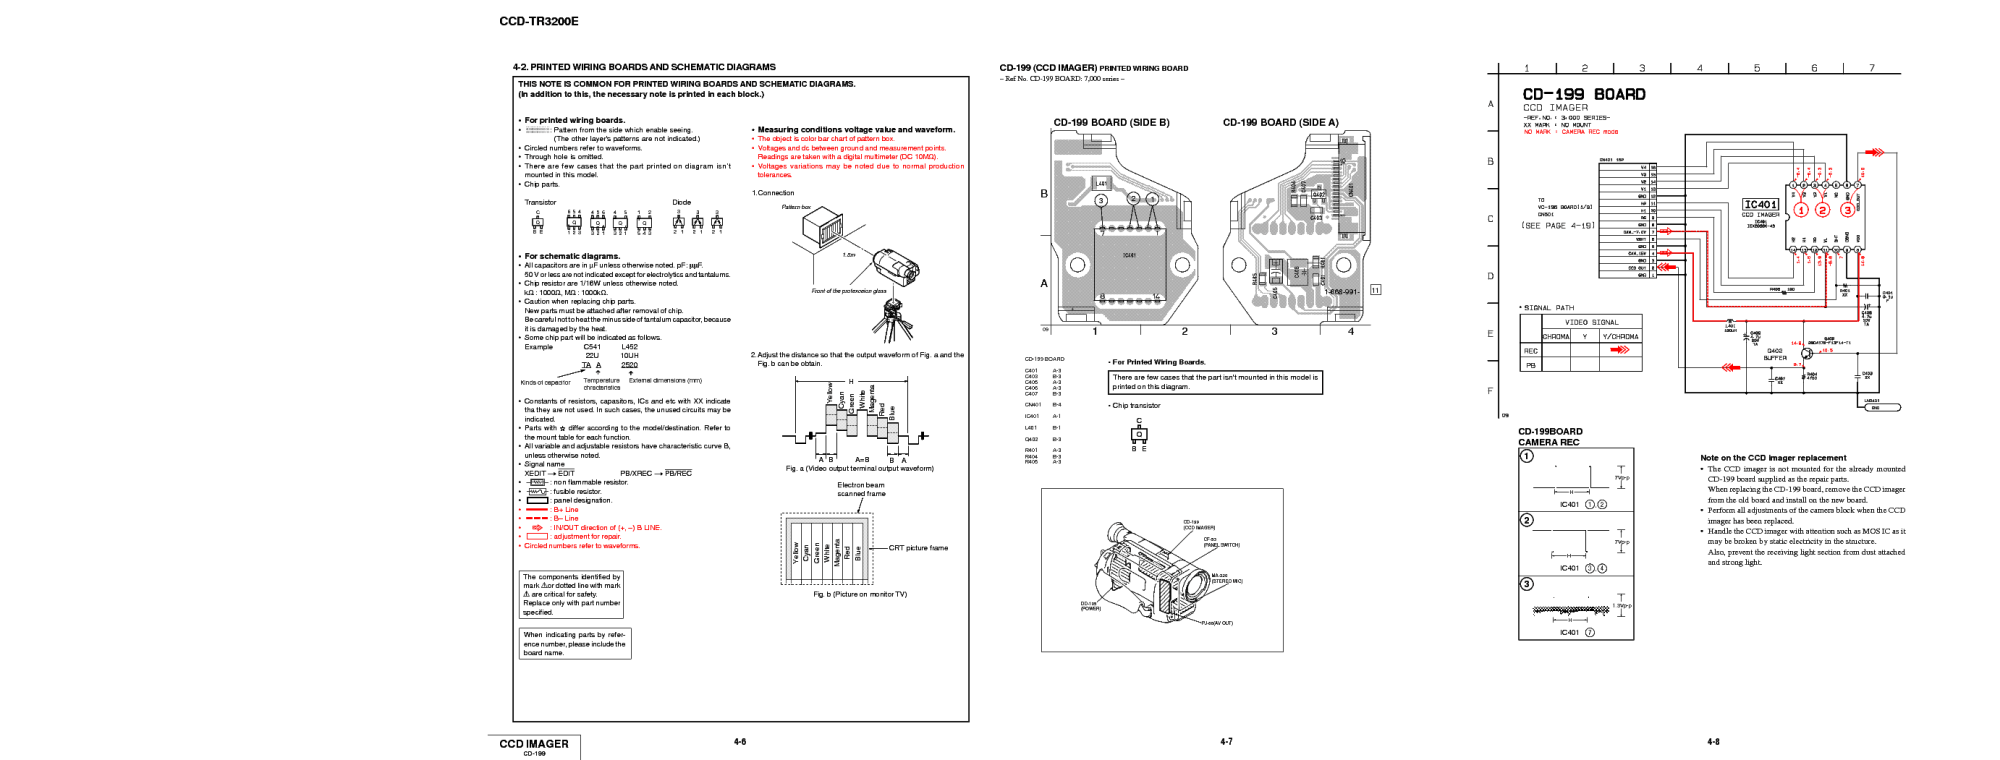 hight resolution of sony ccd tr3200 schematics sch service manual 2nd page